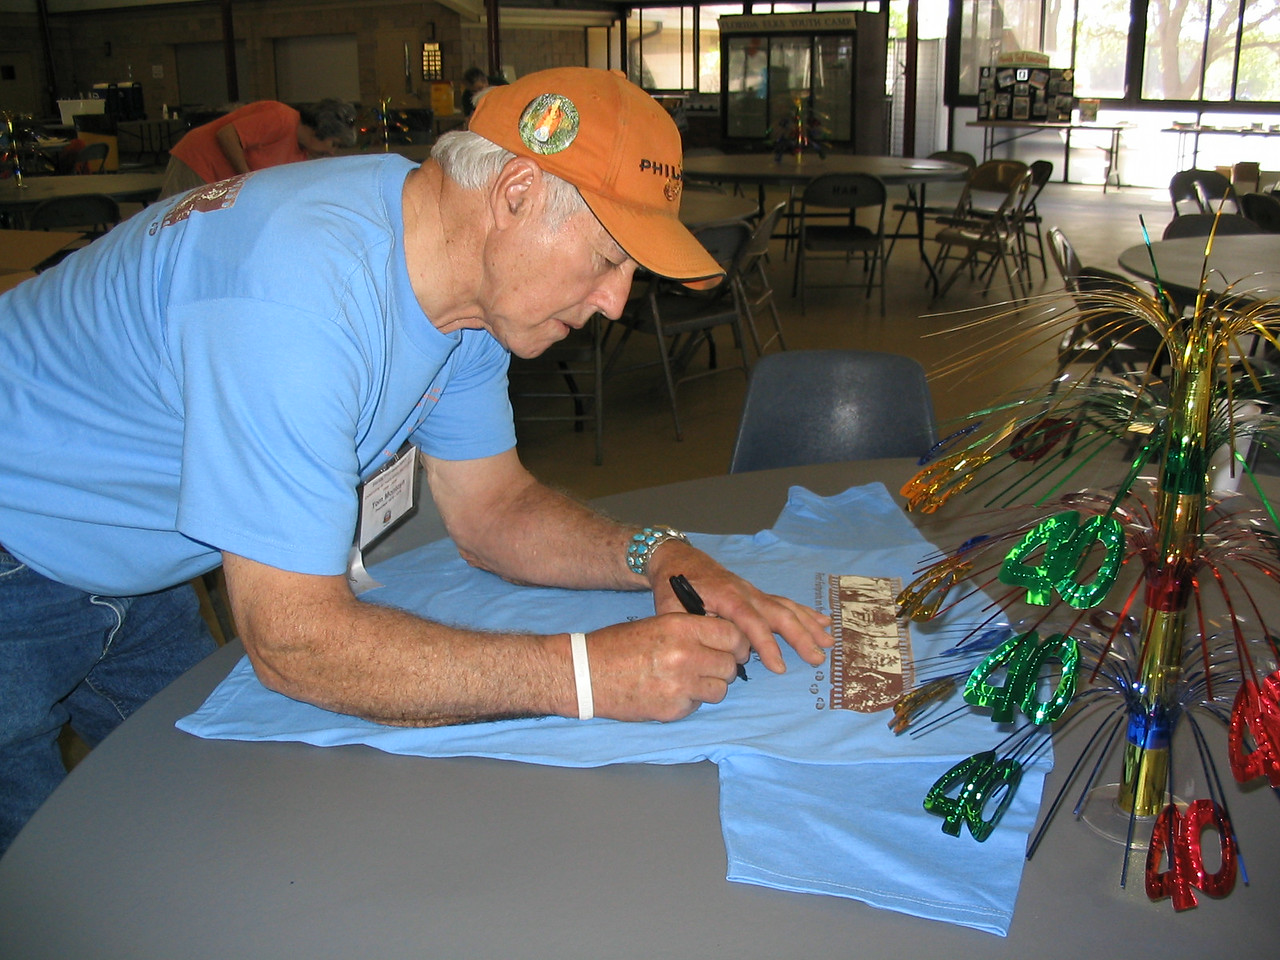 FTA past president Tom Montoya signs a commemorative t-shirt for the auction.<br /> PHOTO CREDIT: Diane Wilkins / Florida Trail Association